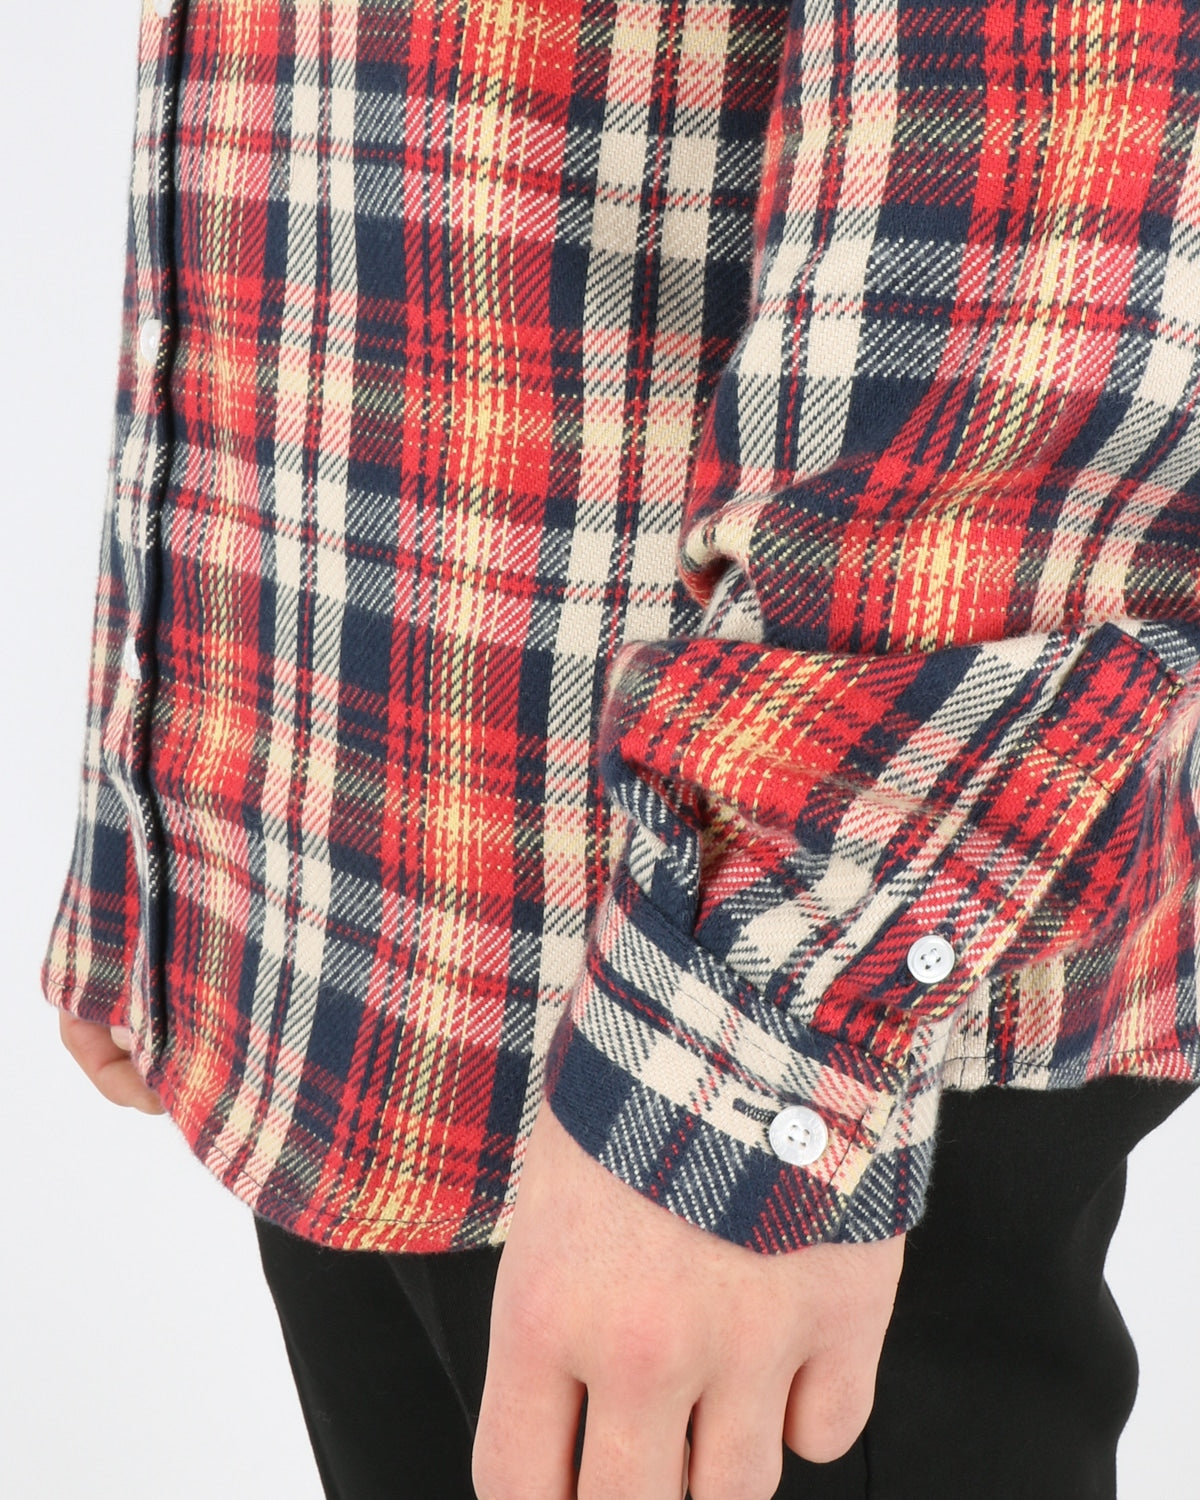 libertine libertine_lynch shirt_red navy check_3_3